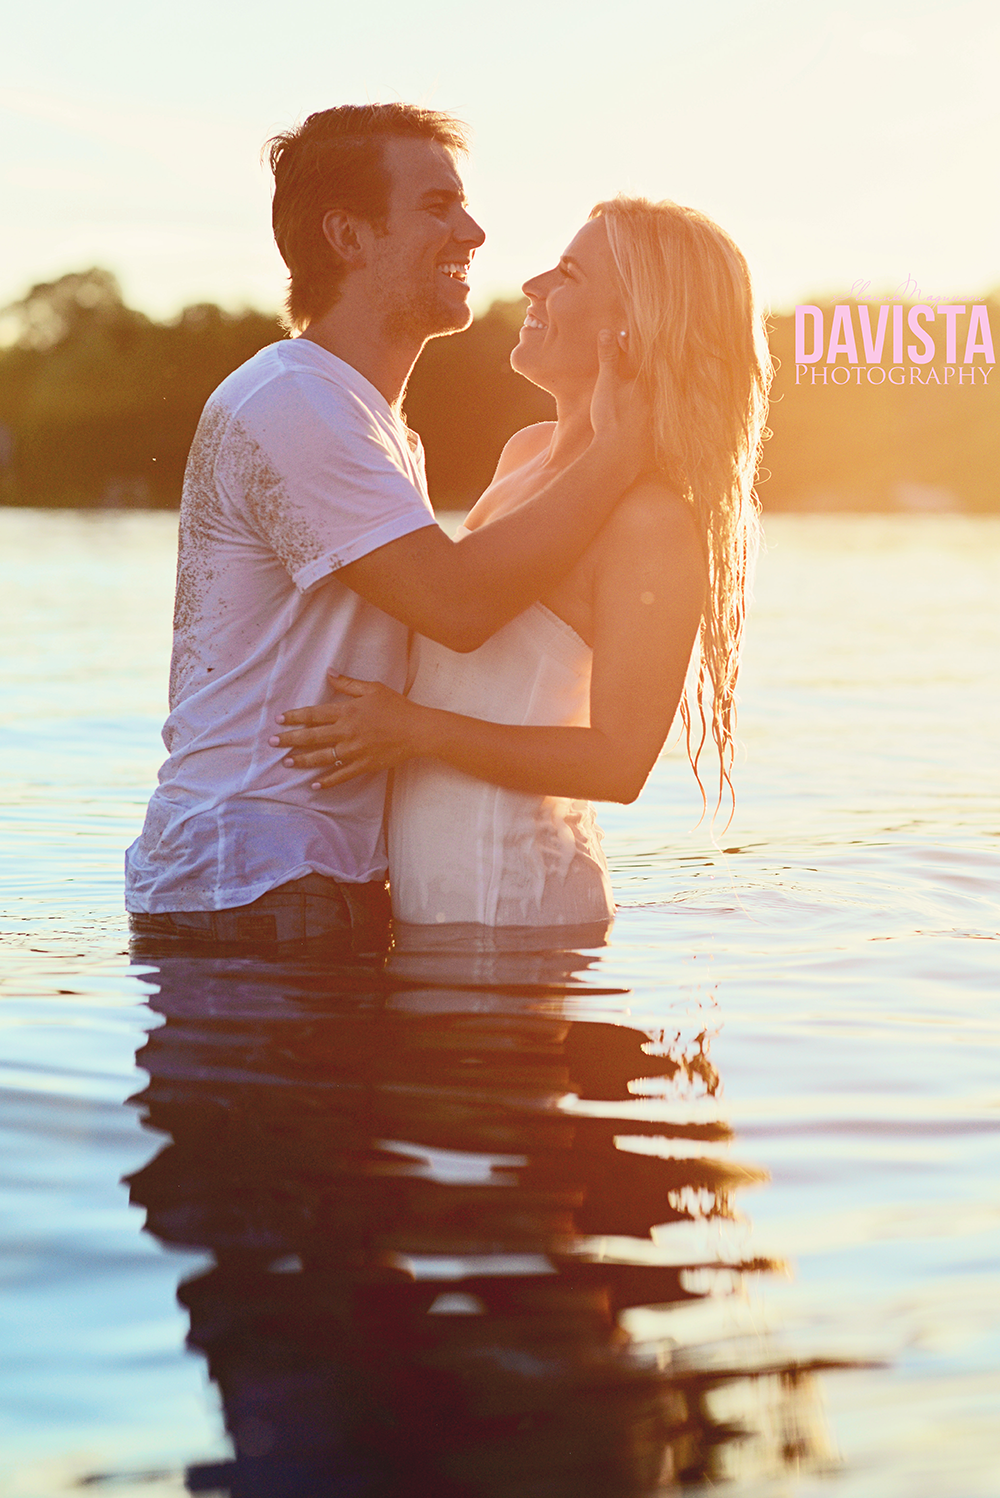 laughter between lovers in the water